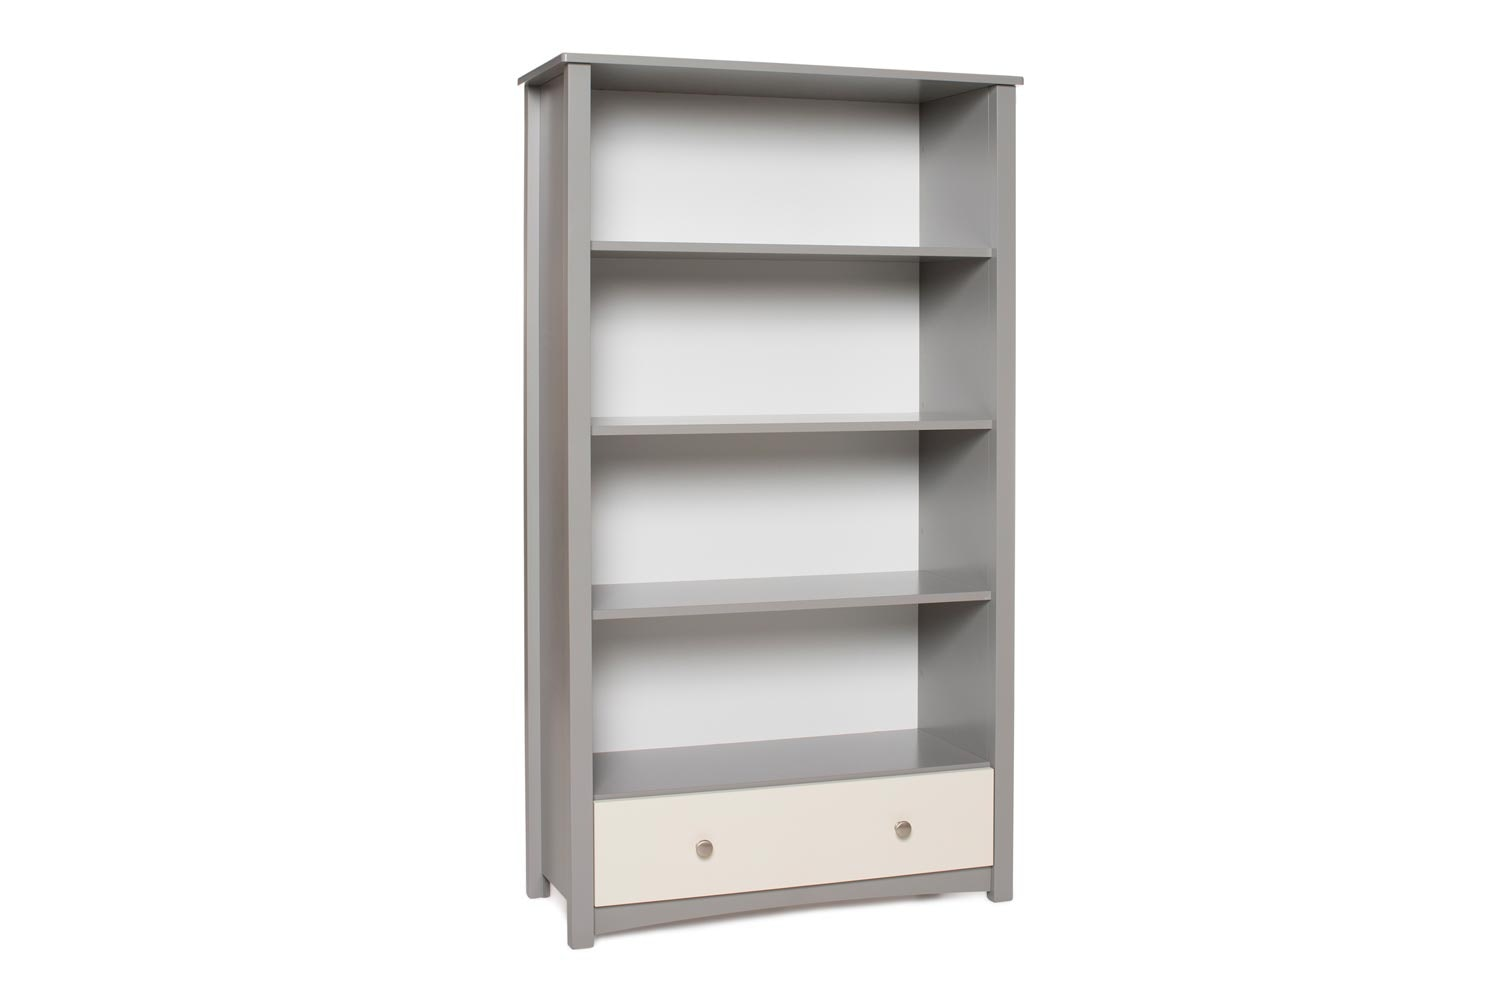 Urban Bookcase 1 Drawer |Tall| Dove Grey & Cream